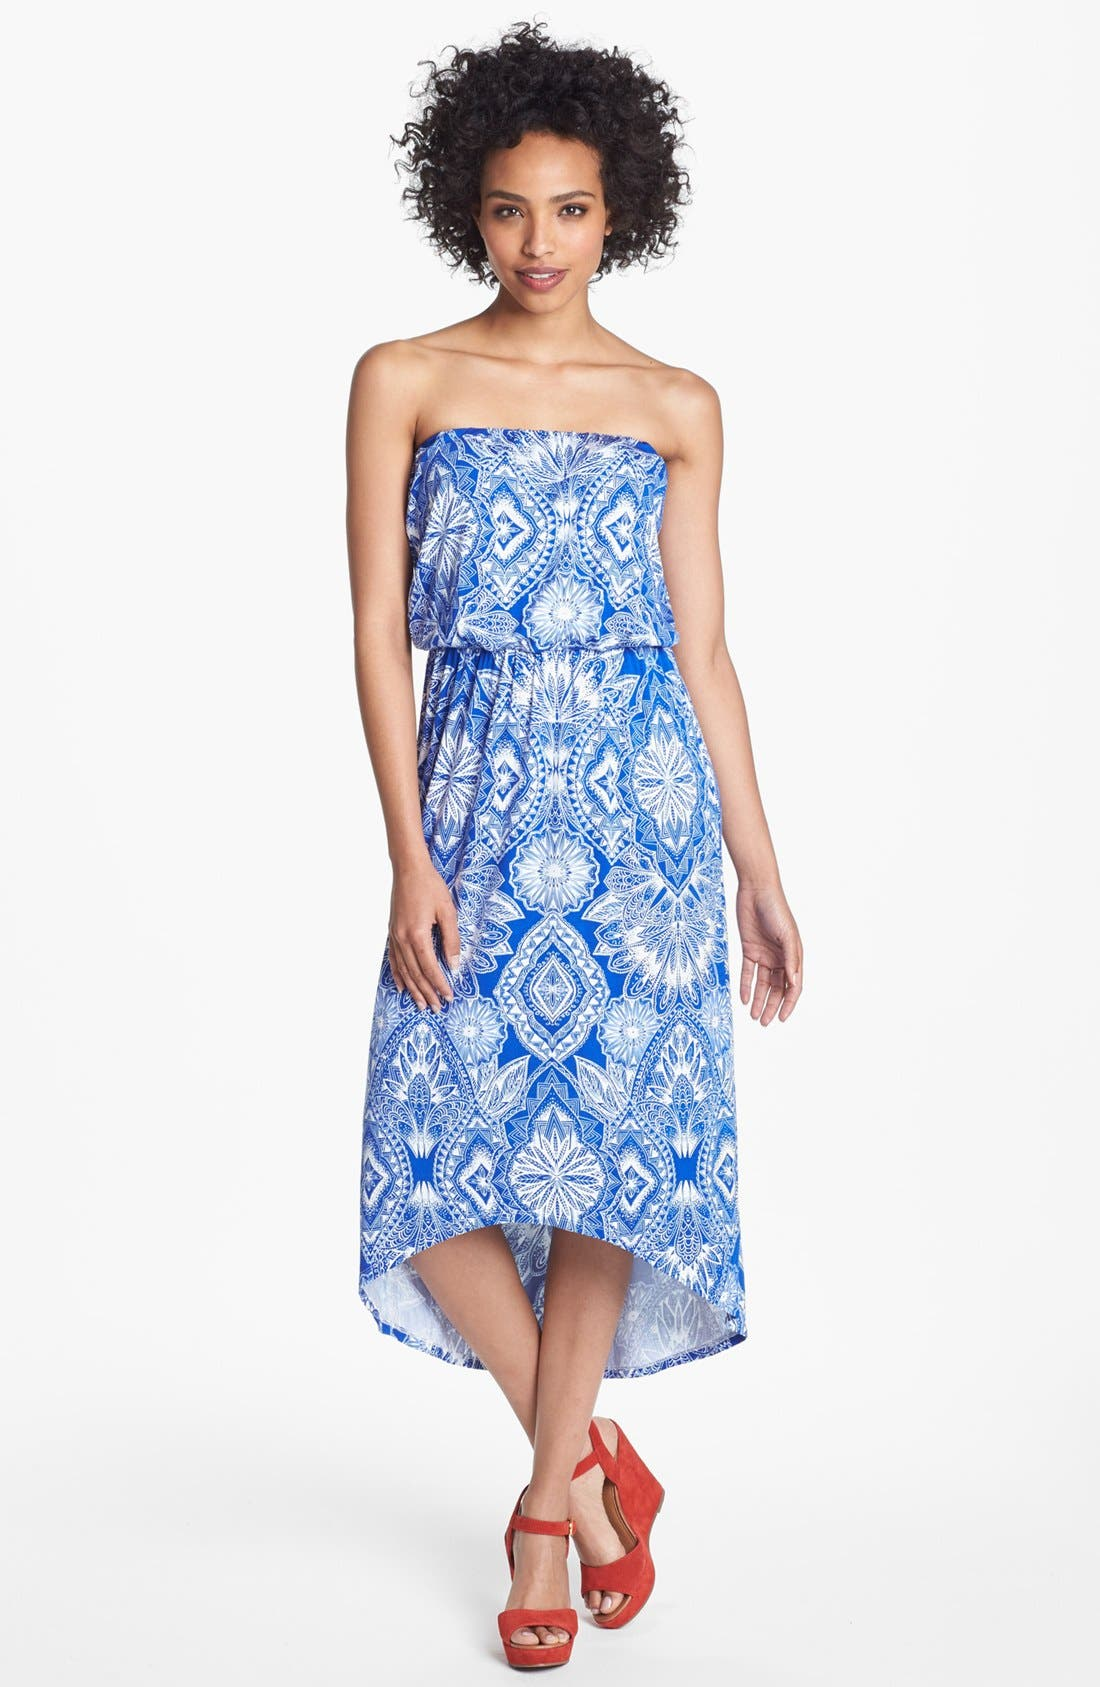 Alternate Image 1 Selected - Felicity & Coco 'Delanie' High/Low Blouson Dress (Nordstrom Exclusive)